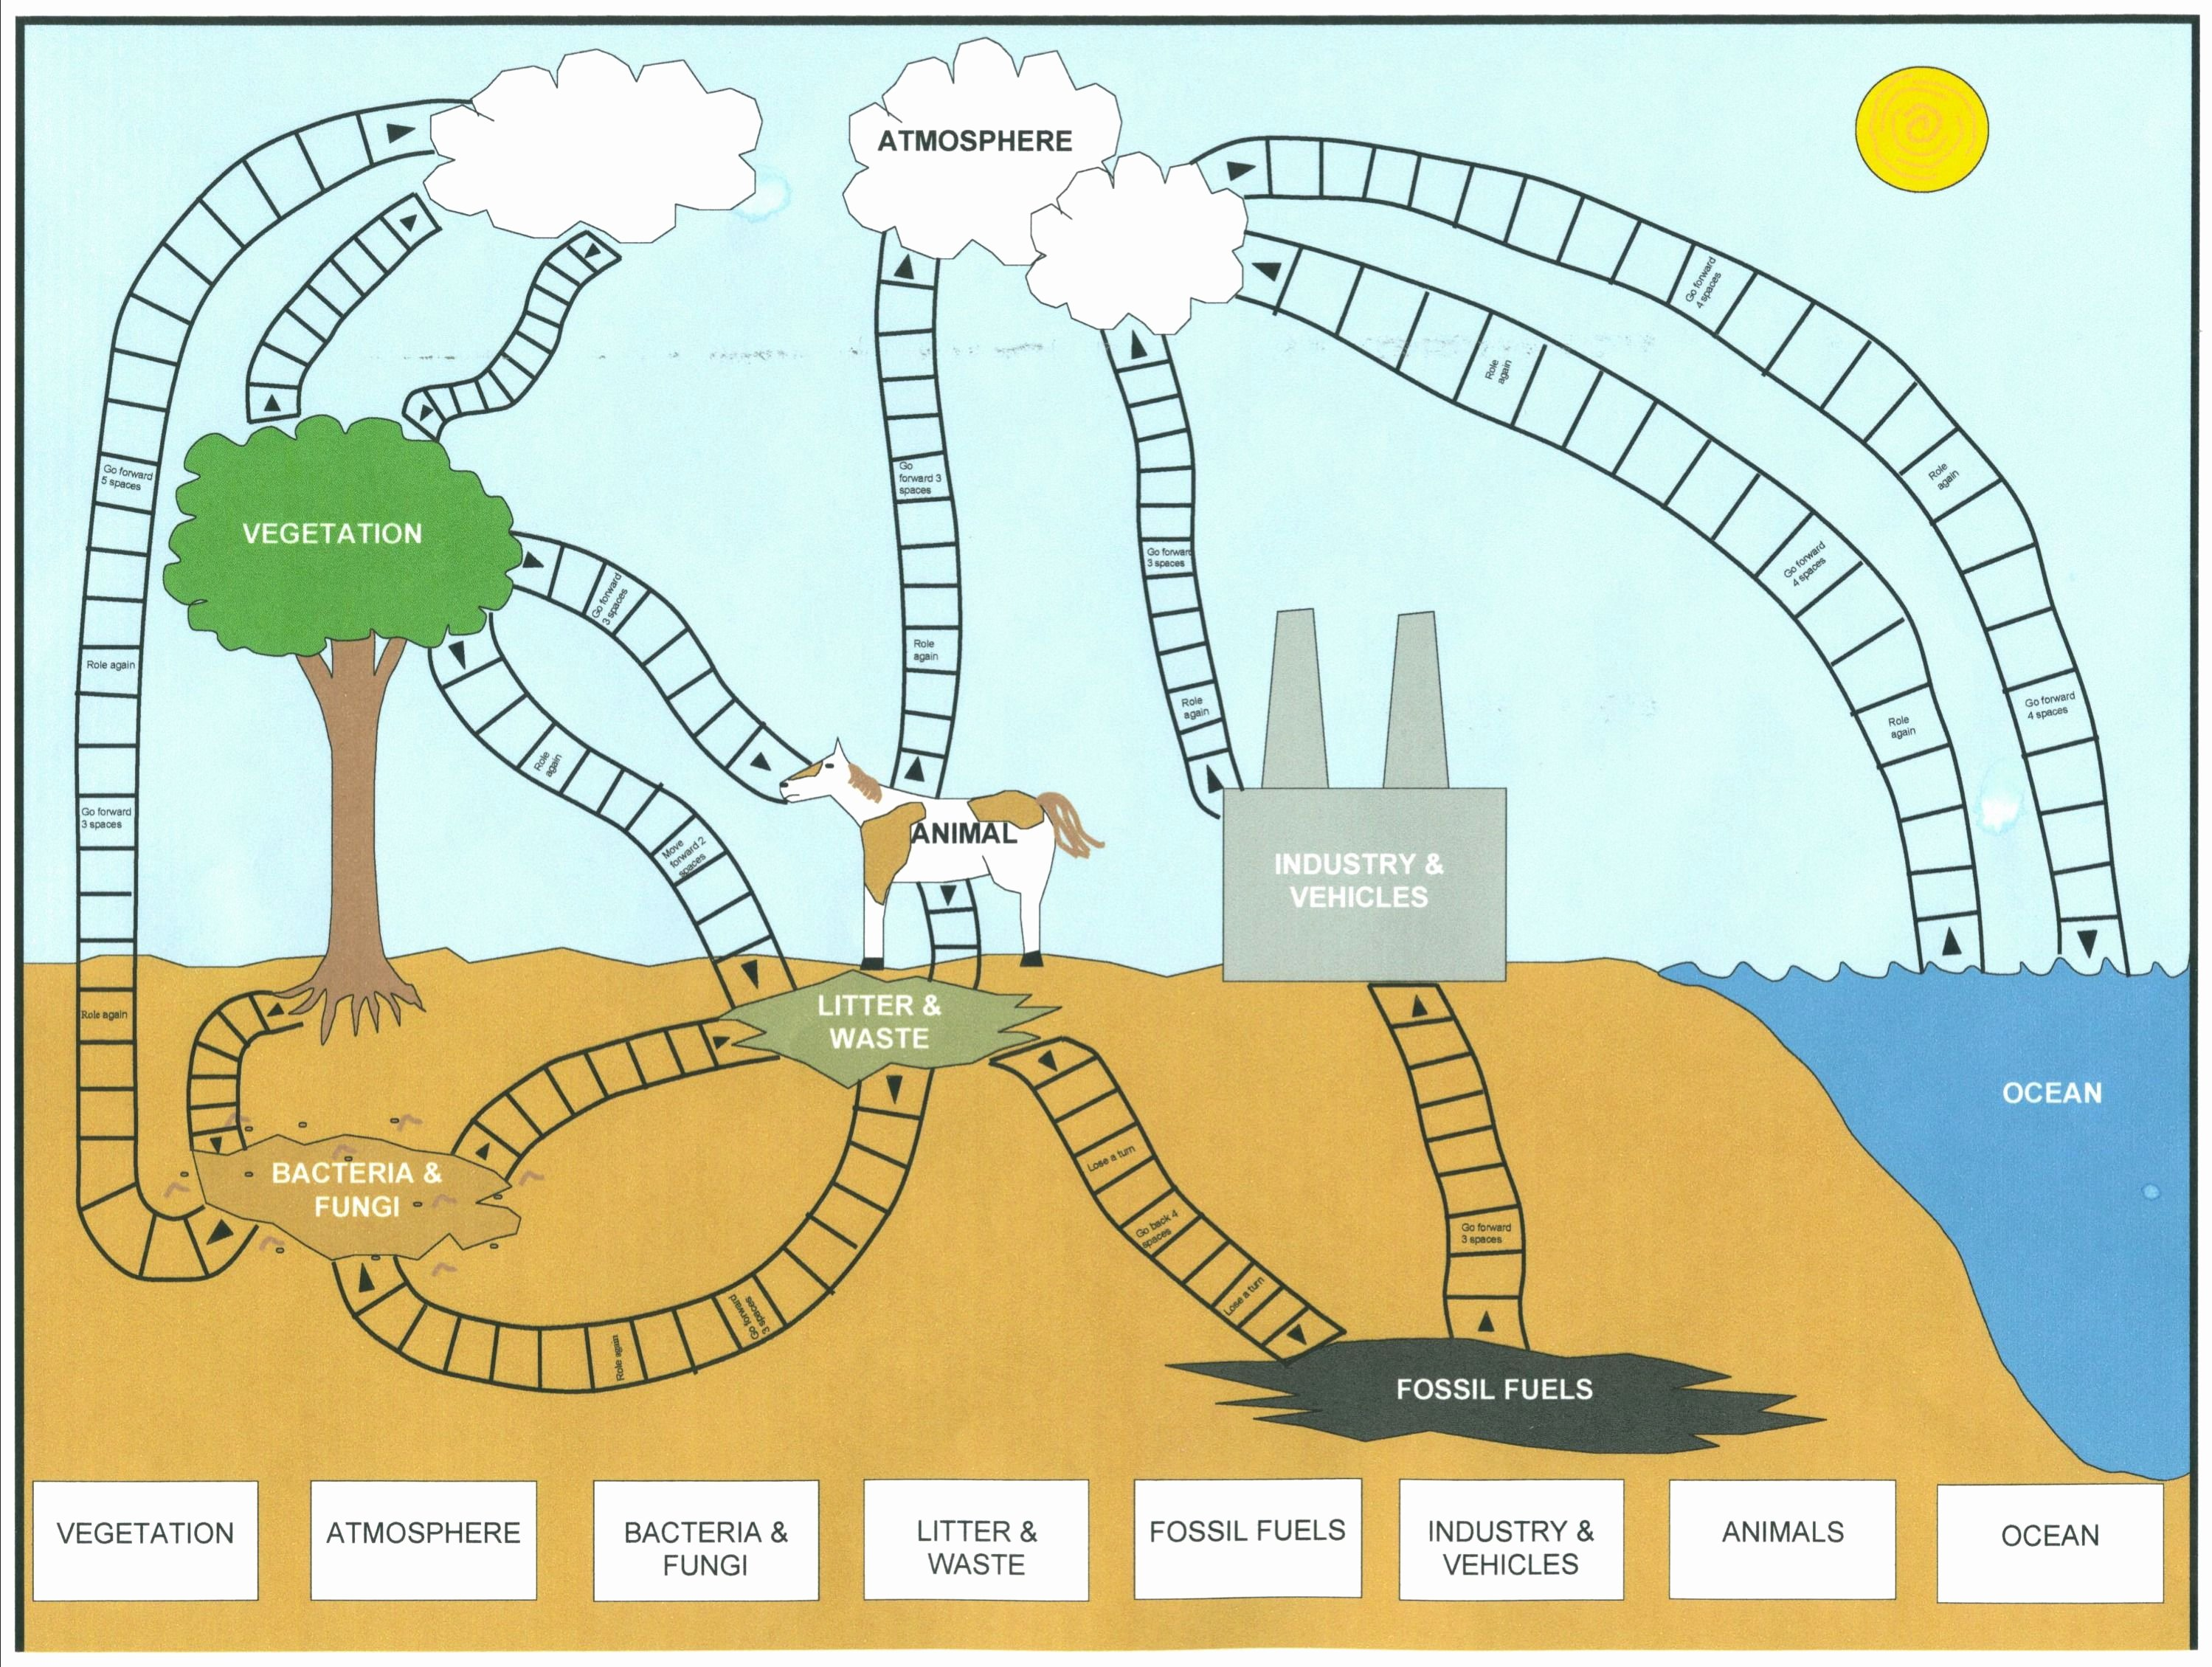 Carbon Cycle Diagram Worksheet Elegant Carbon Cycle Diagram for Kids